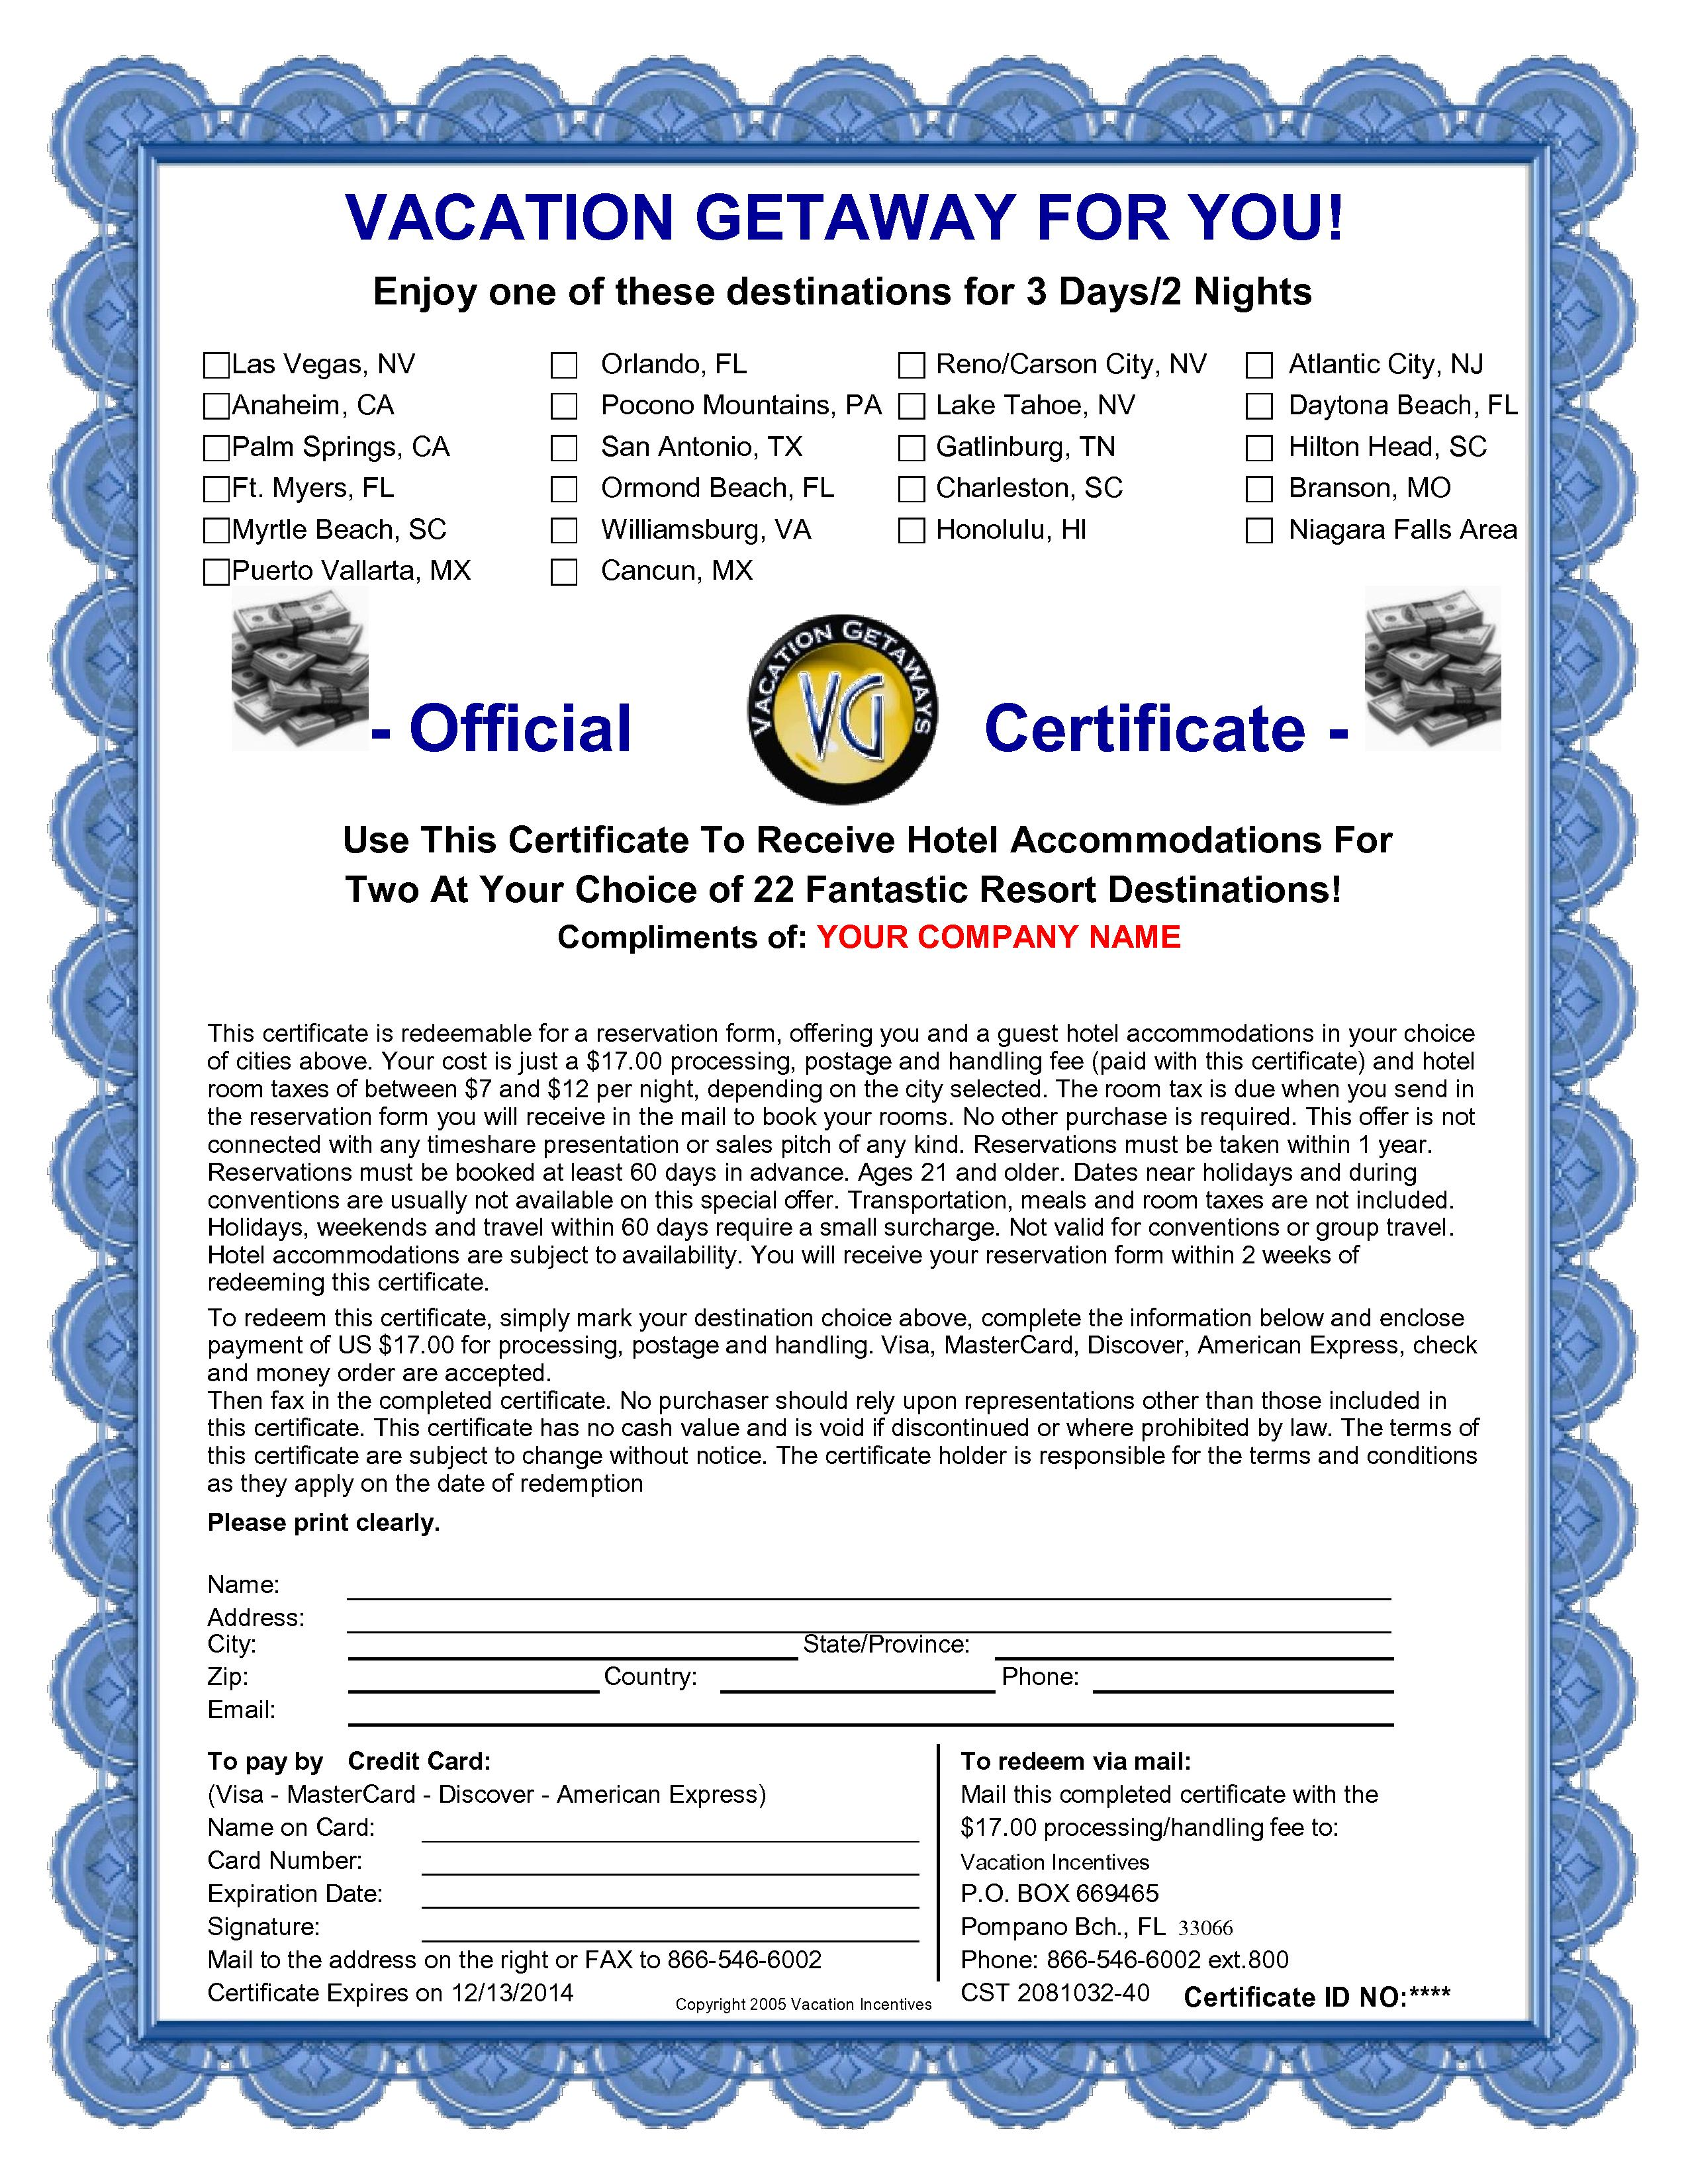 SBF 3_day_2_night_Certificate_Master_Copy-1-FRONT